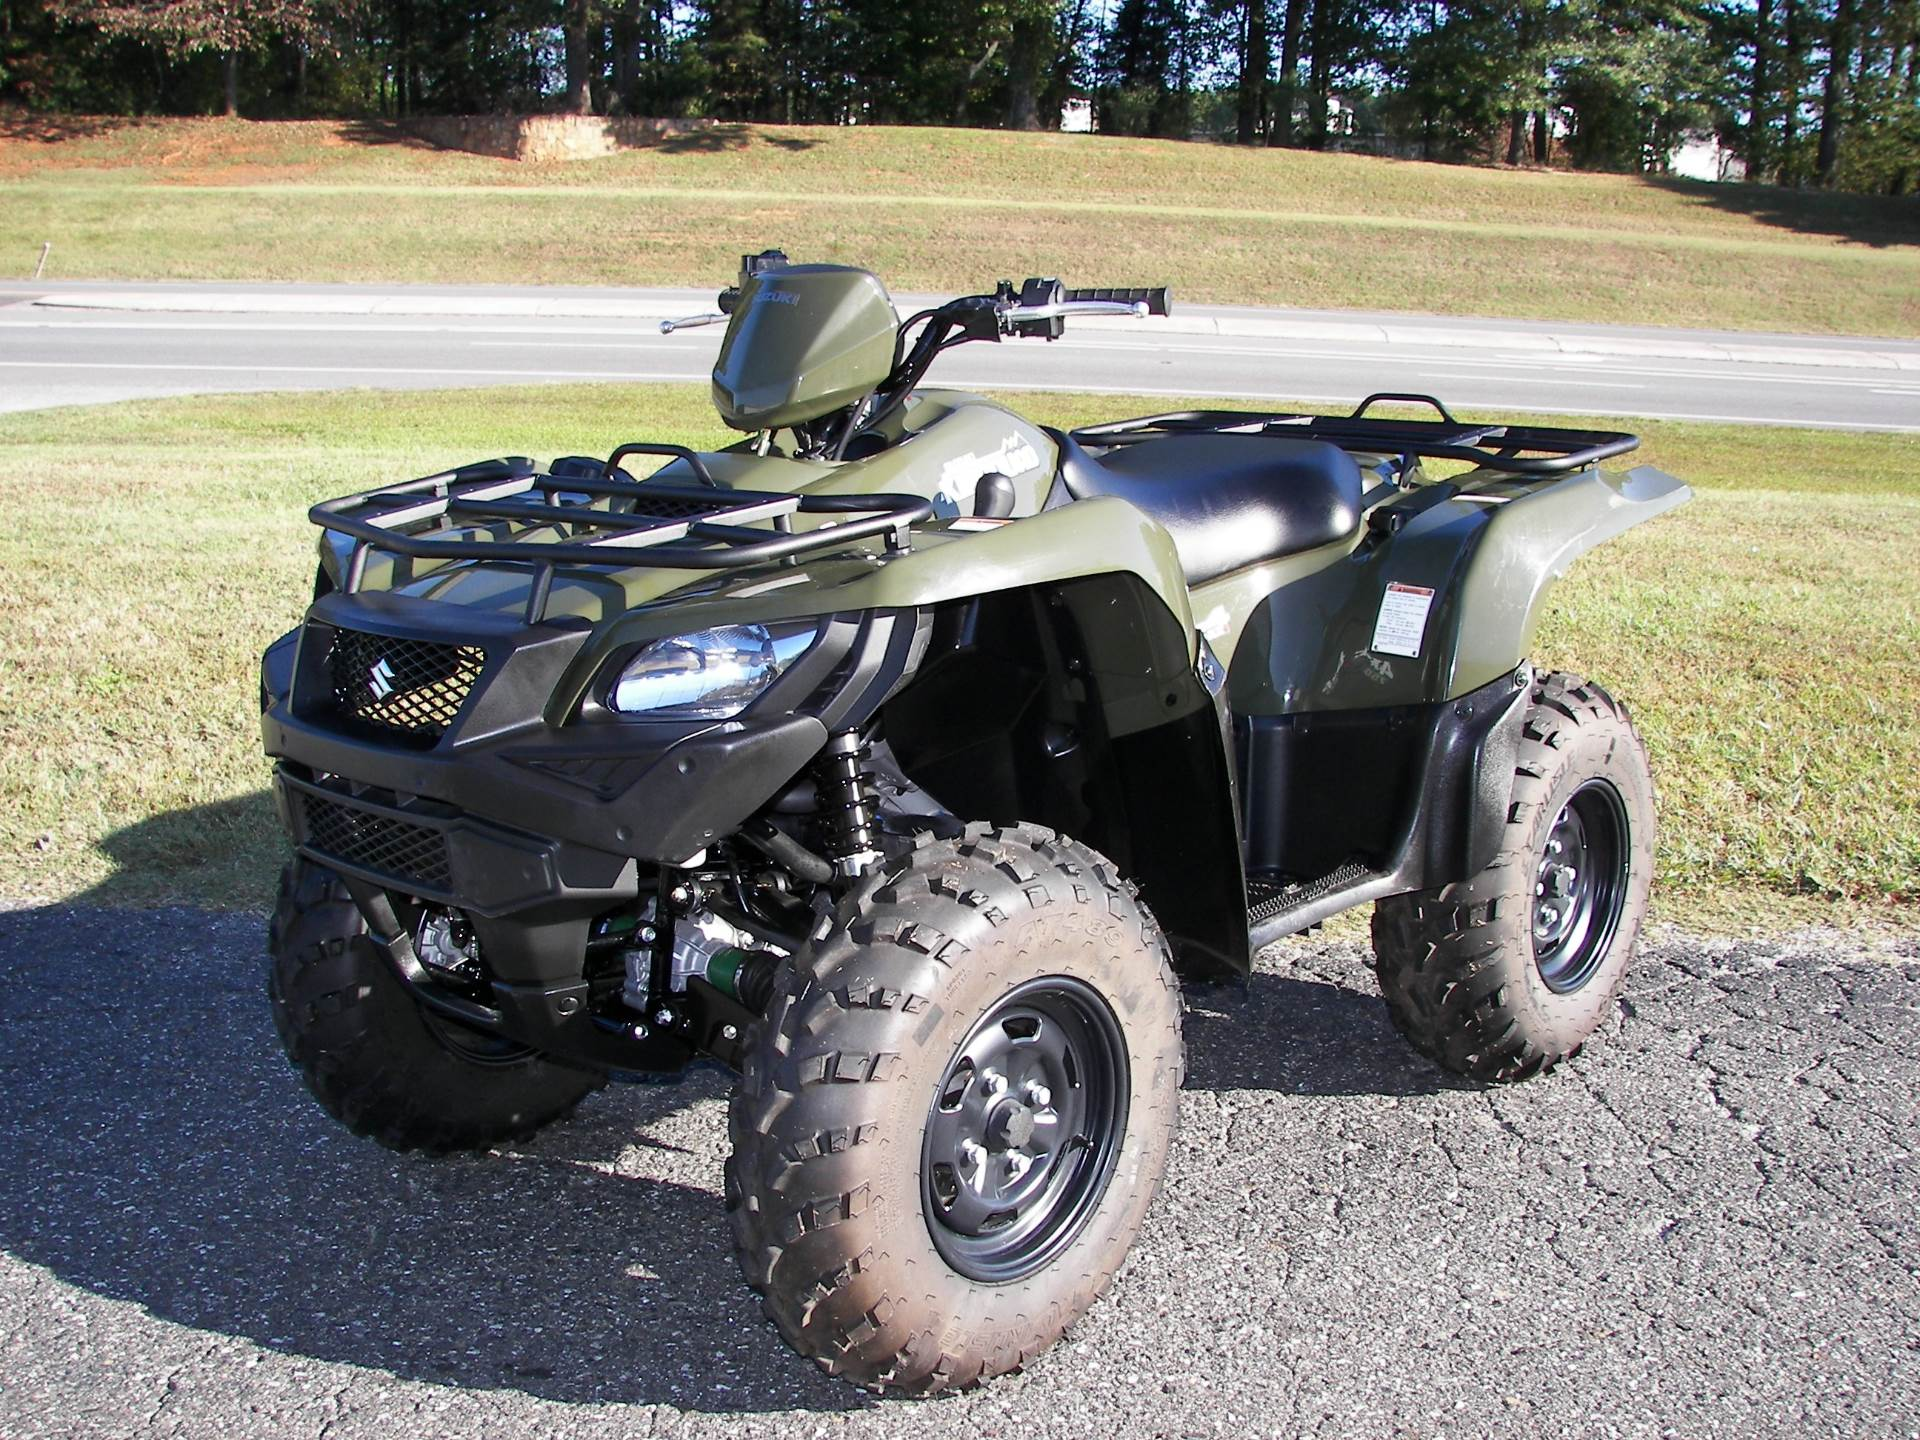 2018 Suzuki KingQuad 750AXi in Shelby, North Carolina - Photo 3